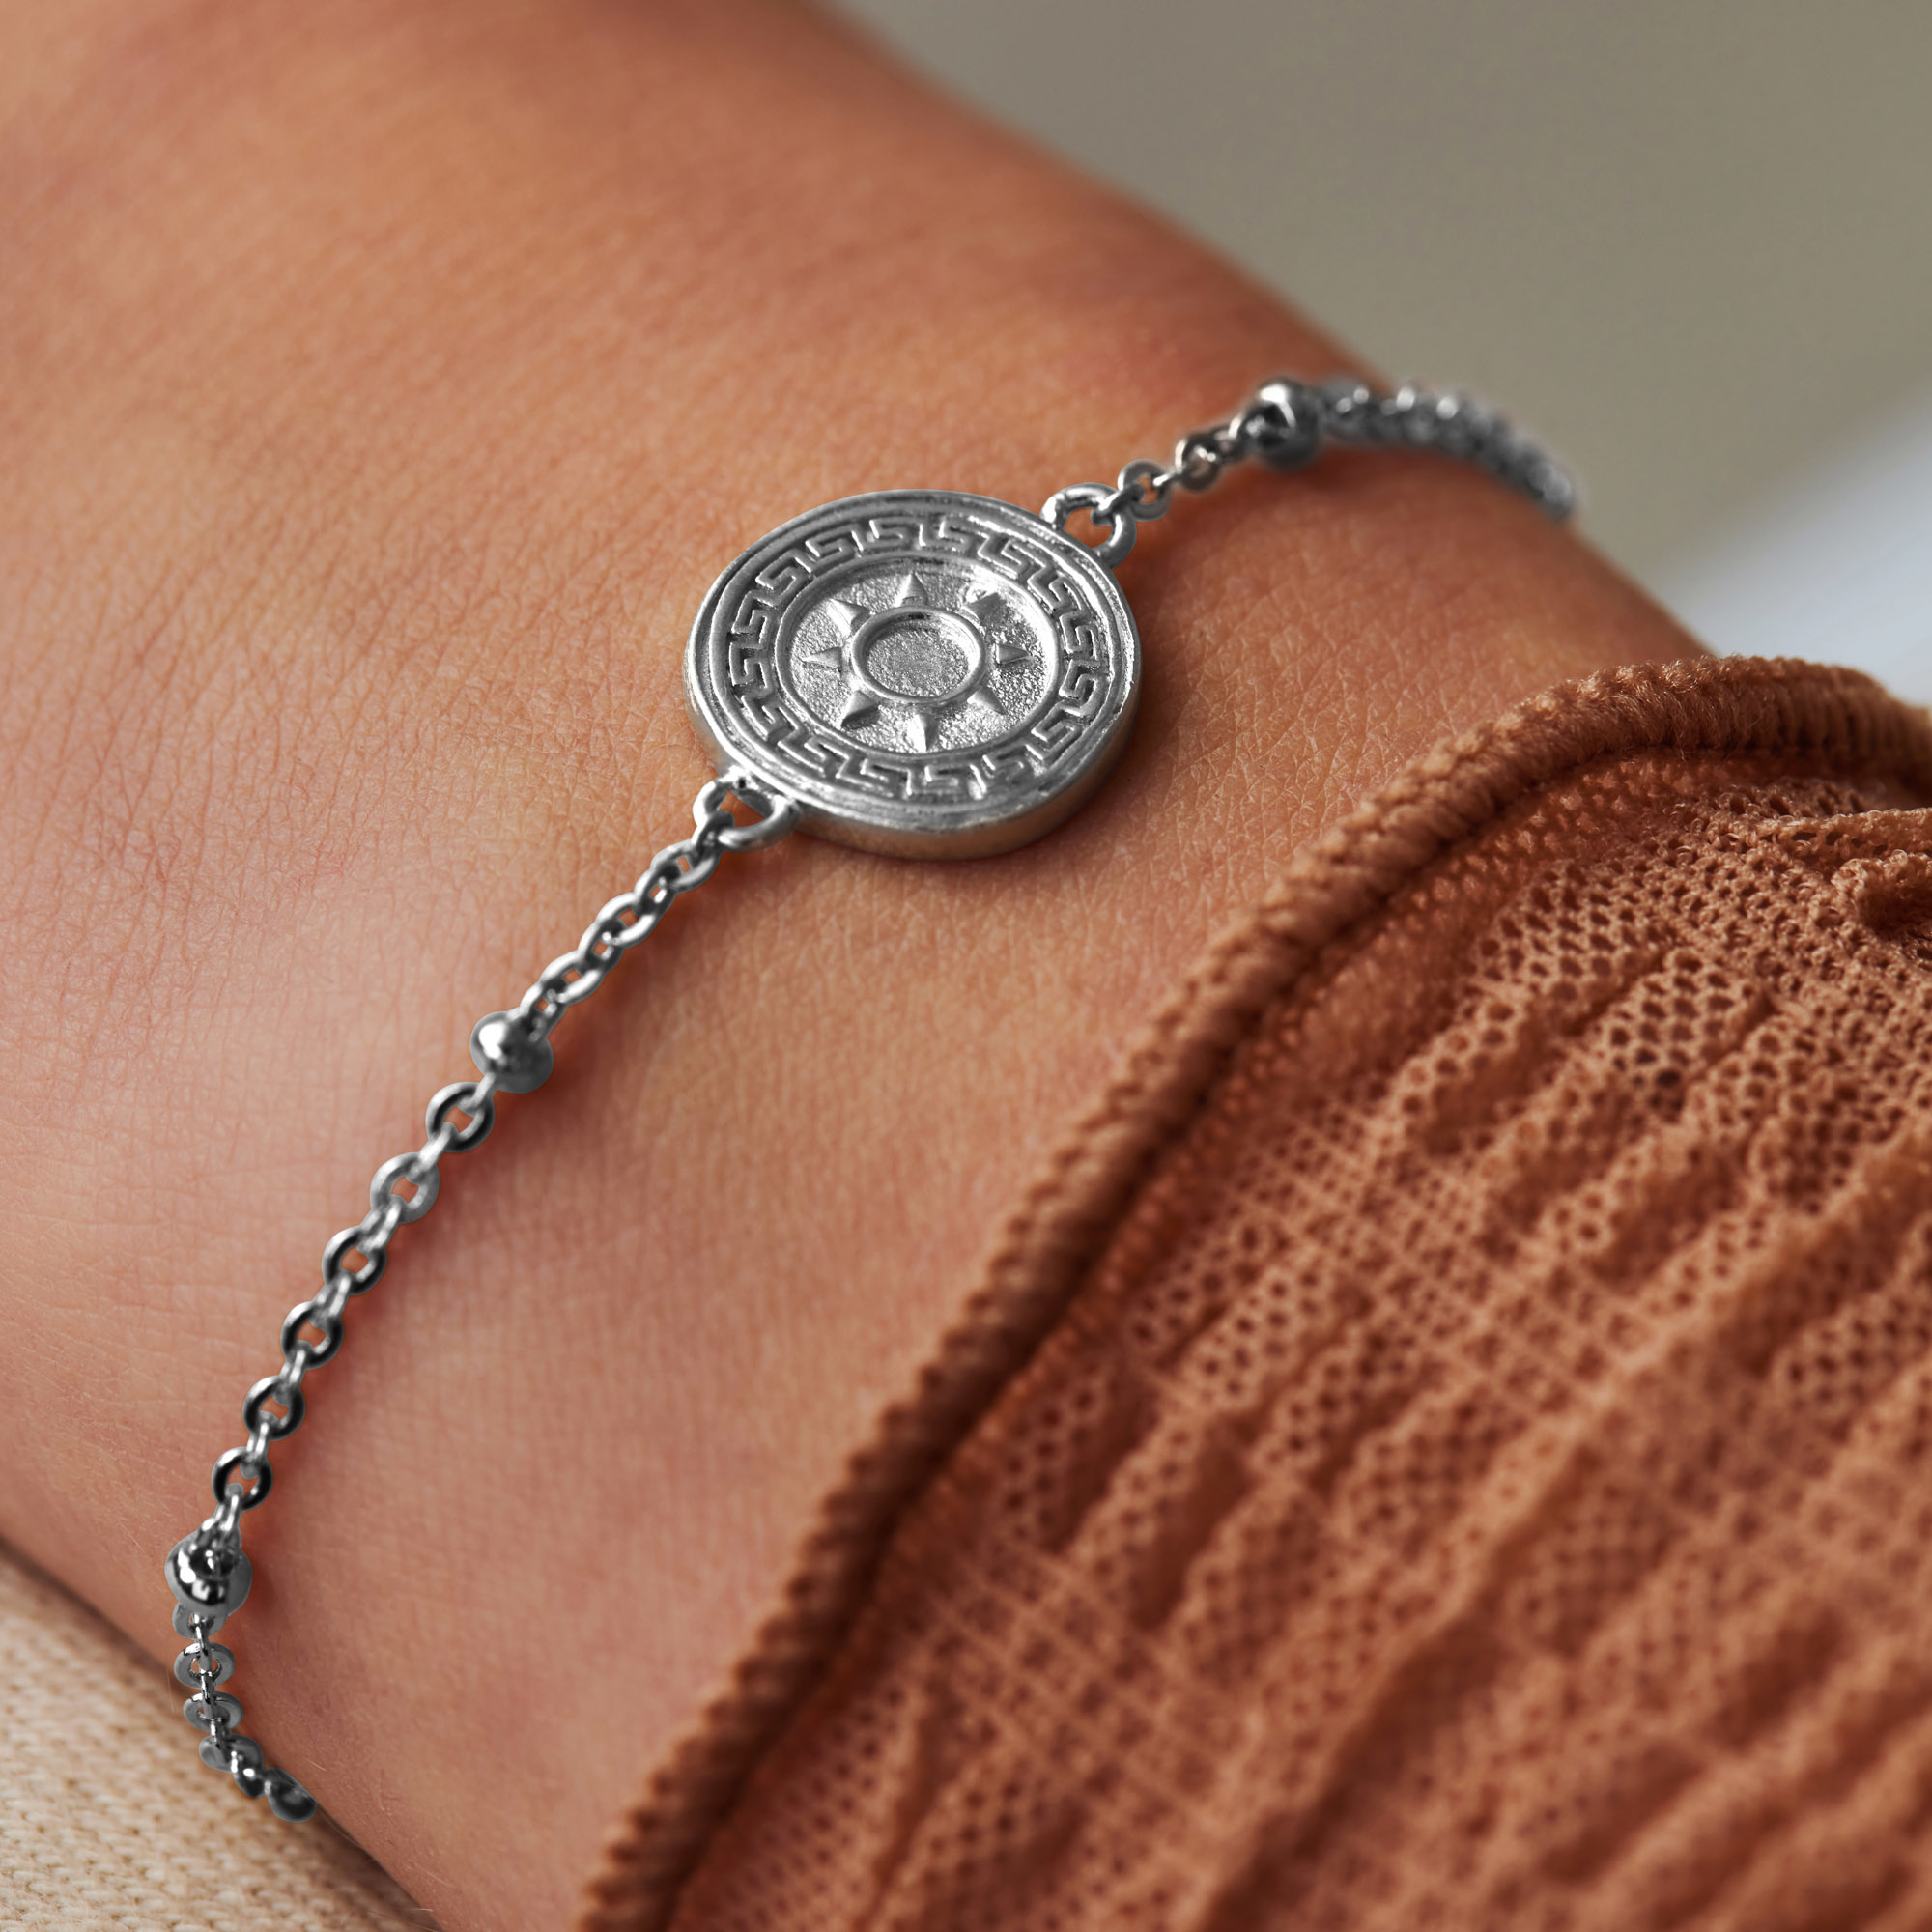 Violet Hamden Athens 925 sterling silver bracelet with coin and spheres